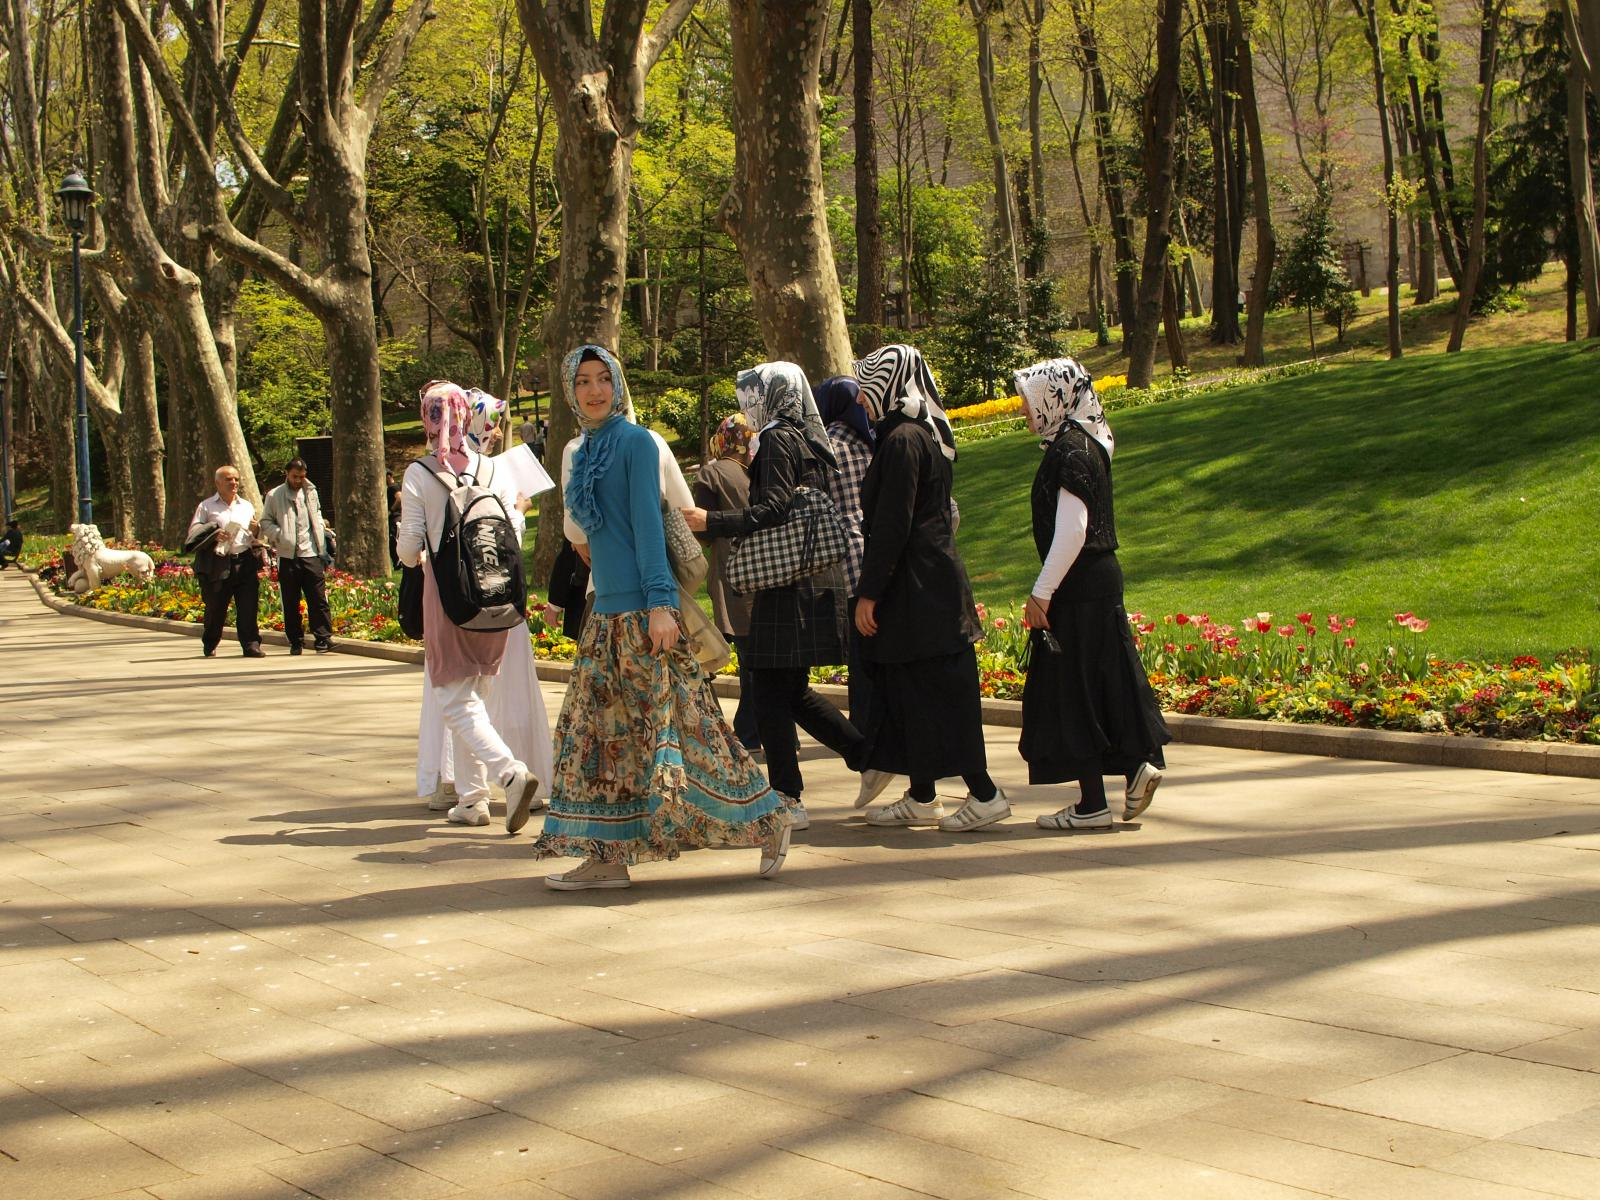 Sunday In The Park - Mein Istanbul